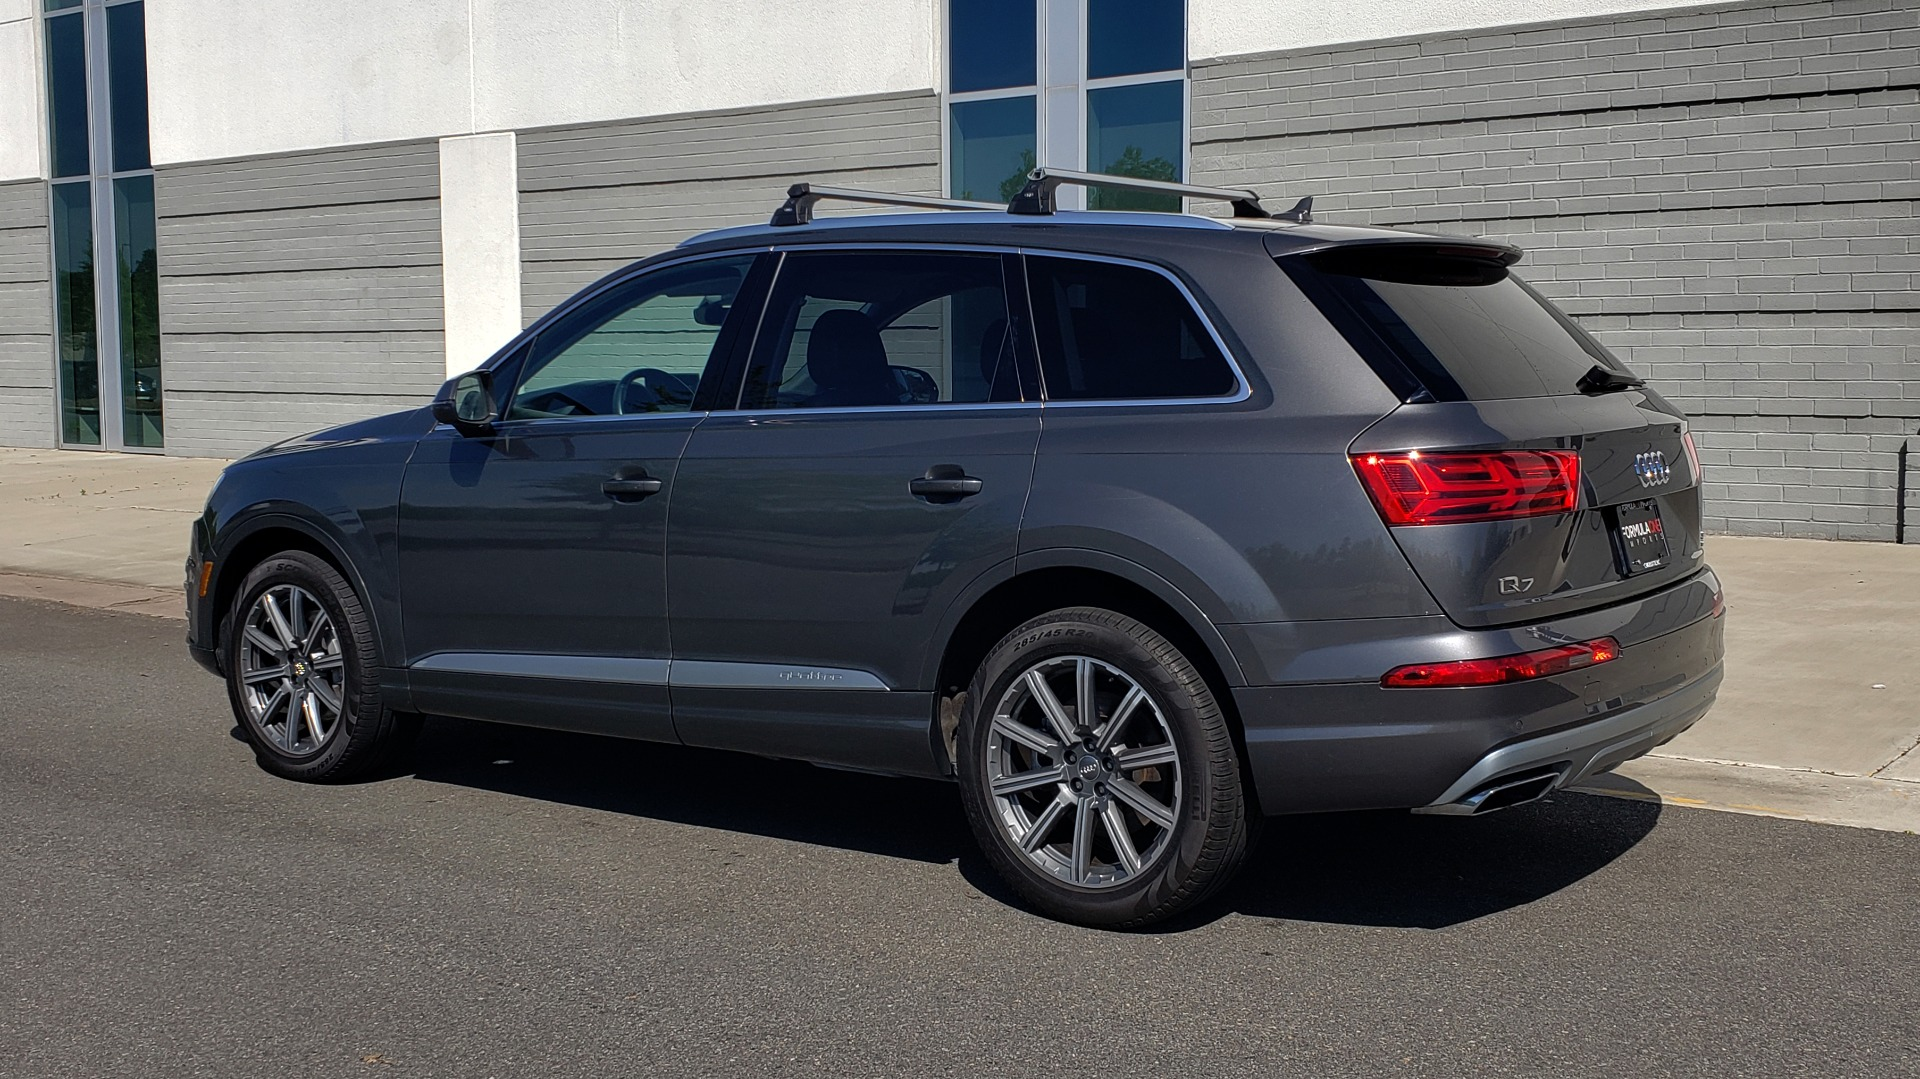 Used 2018 Audi Q7 PREMIUM PLUS TIPTRONIC / NAV / SUNROOF / VISION PKG / CLD WTHR / REARVIEW for sale $44,395 at Formula Imports in Charlotte NC 28227 5